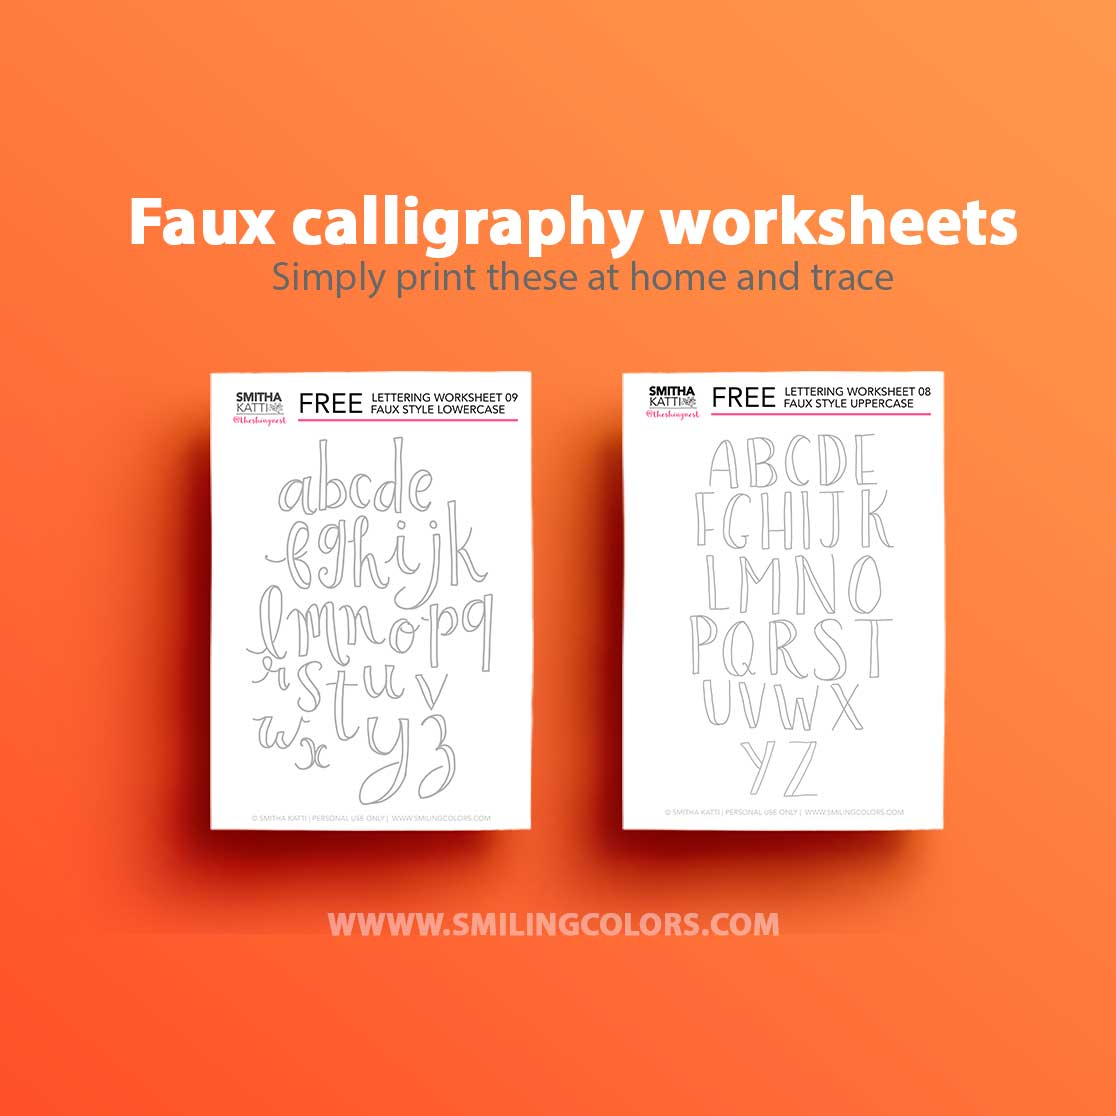 picture regarding Free Calligraphy Worksheets Printable identified as Lettering worksheets: 9 Free of charge printable prepare sheets towards hint